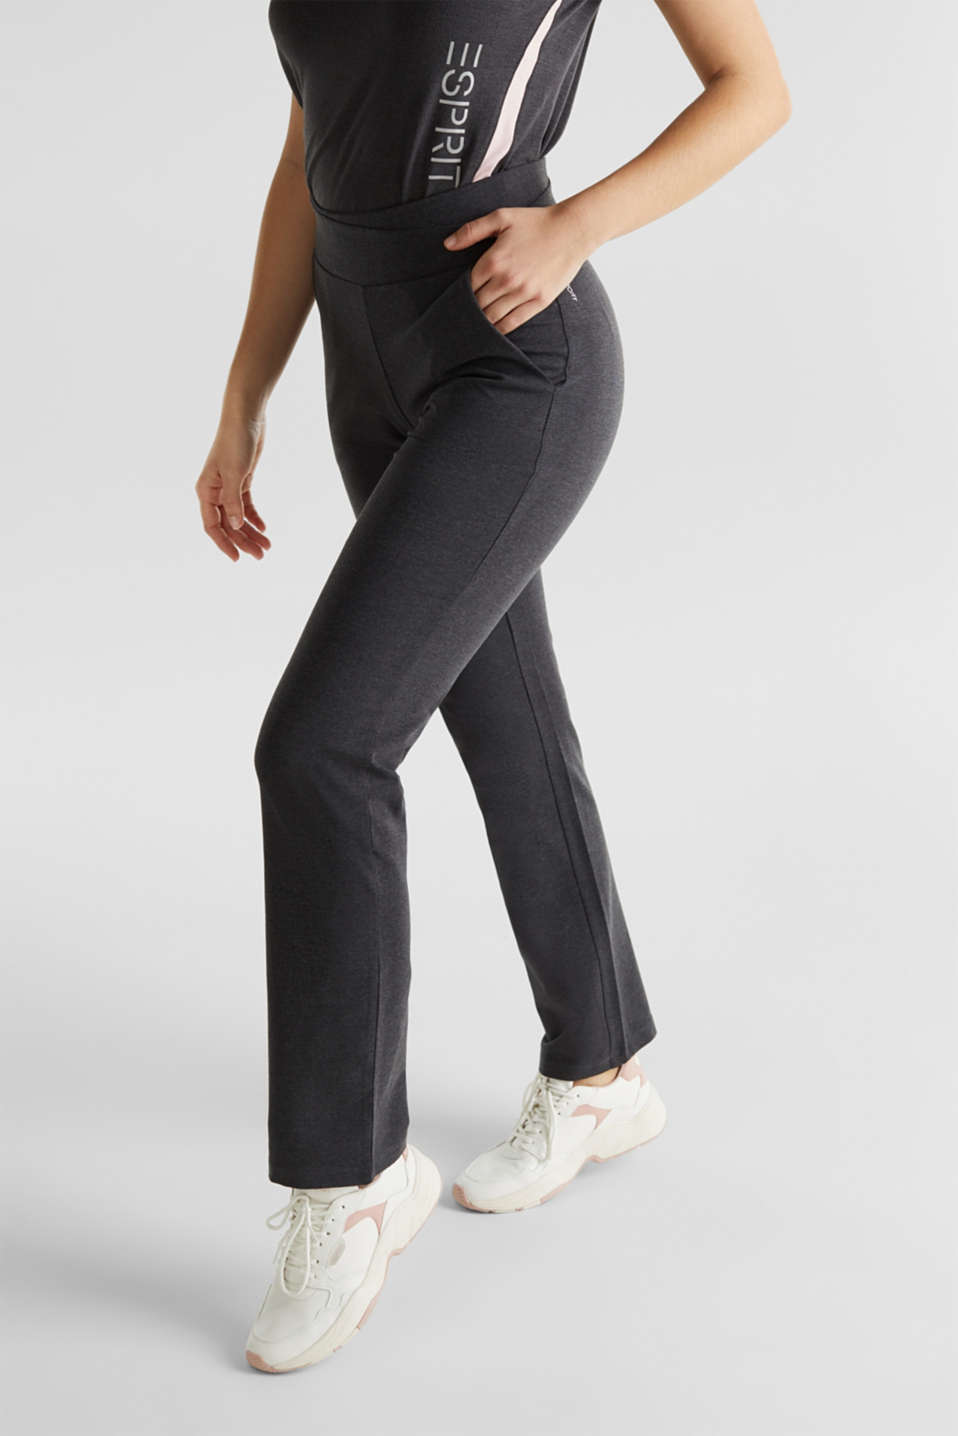 Stretch jersey trousers with organic cotton, ANTHRACITE 2, detail image number 5